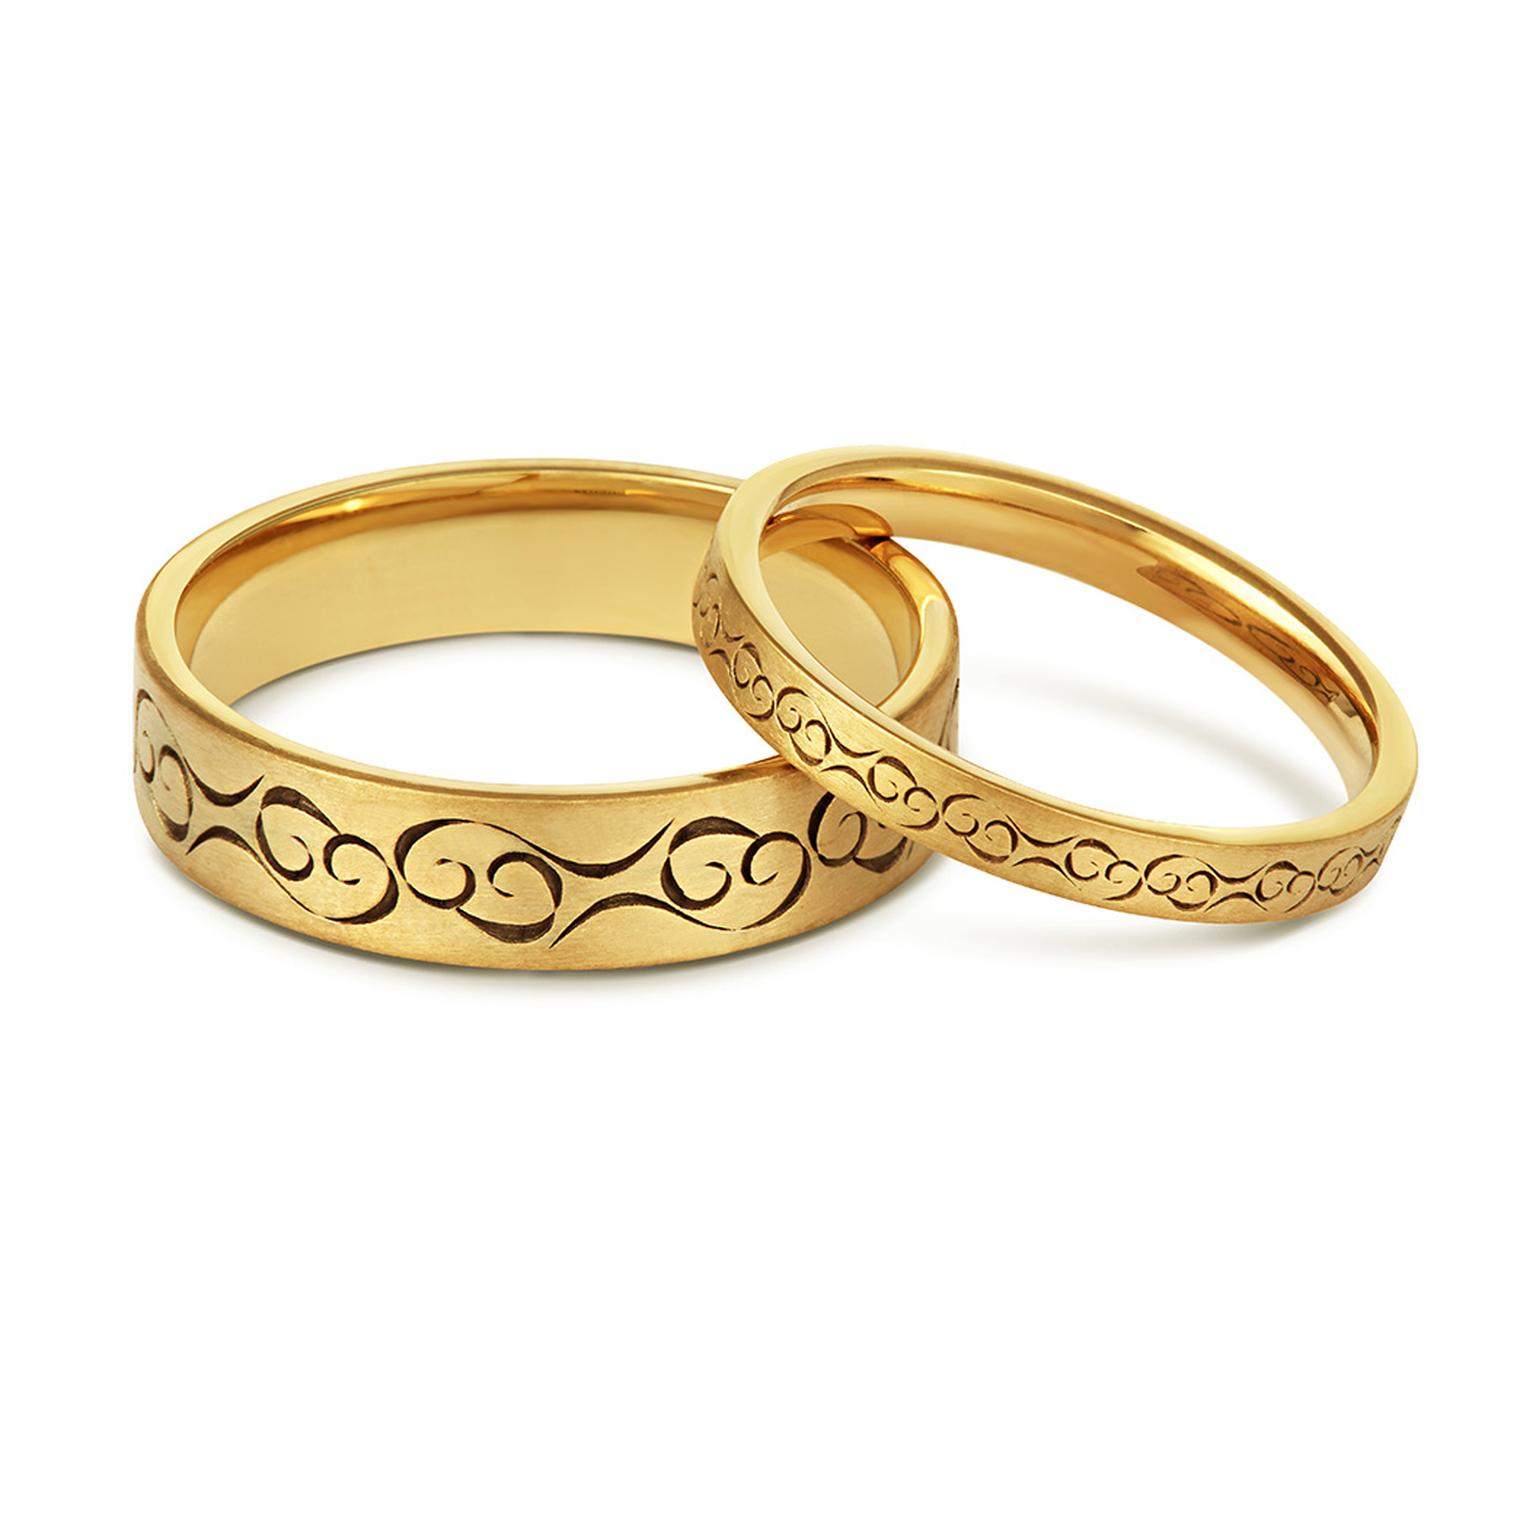 Cred Celtic Love Fairtrade gold wedding rings